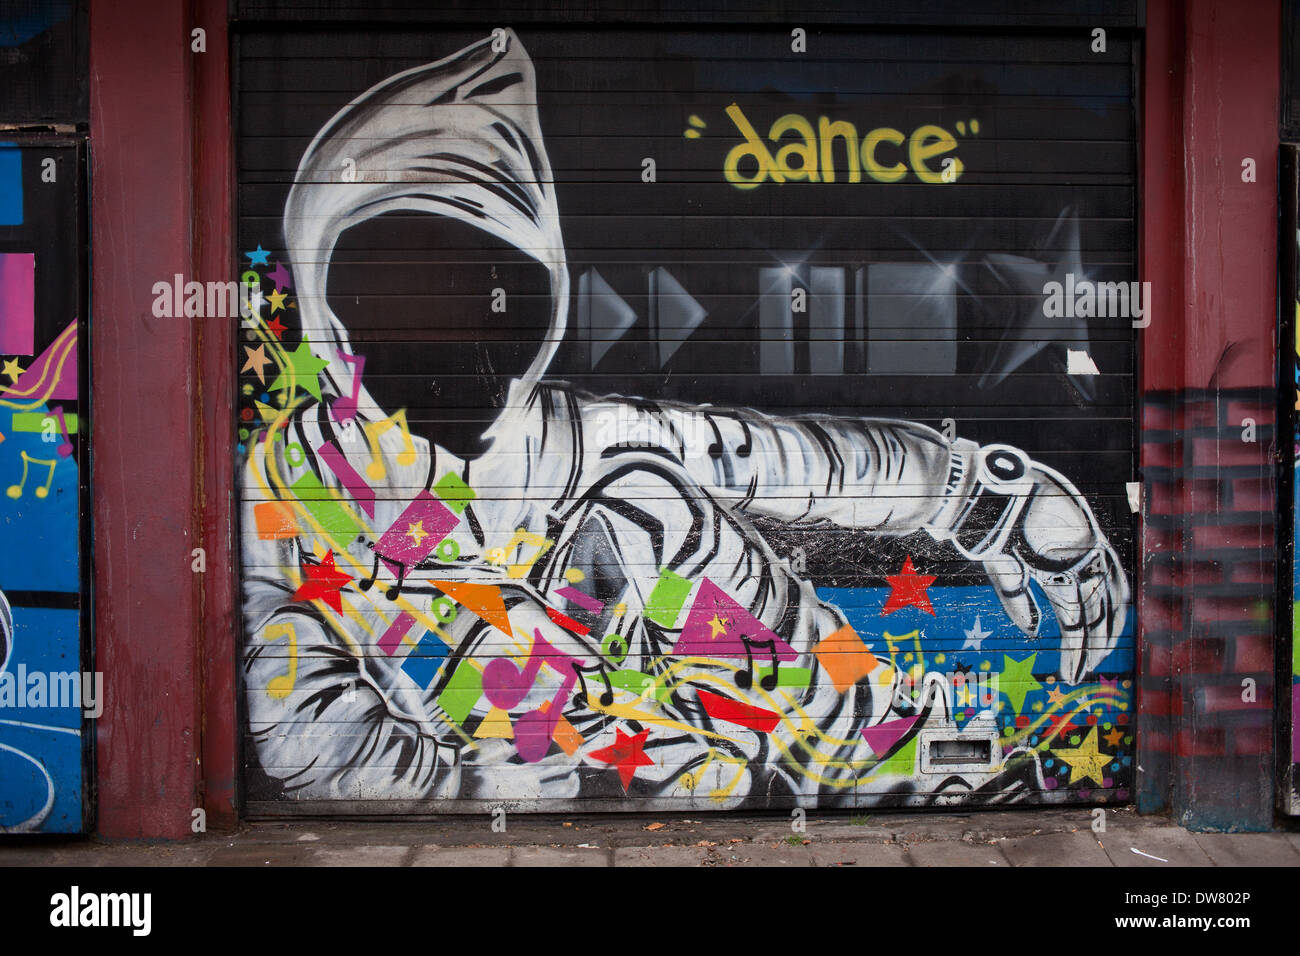 Graffiti N Music